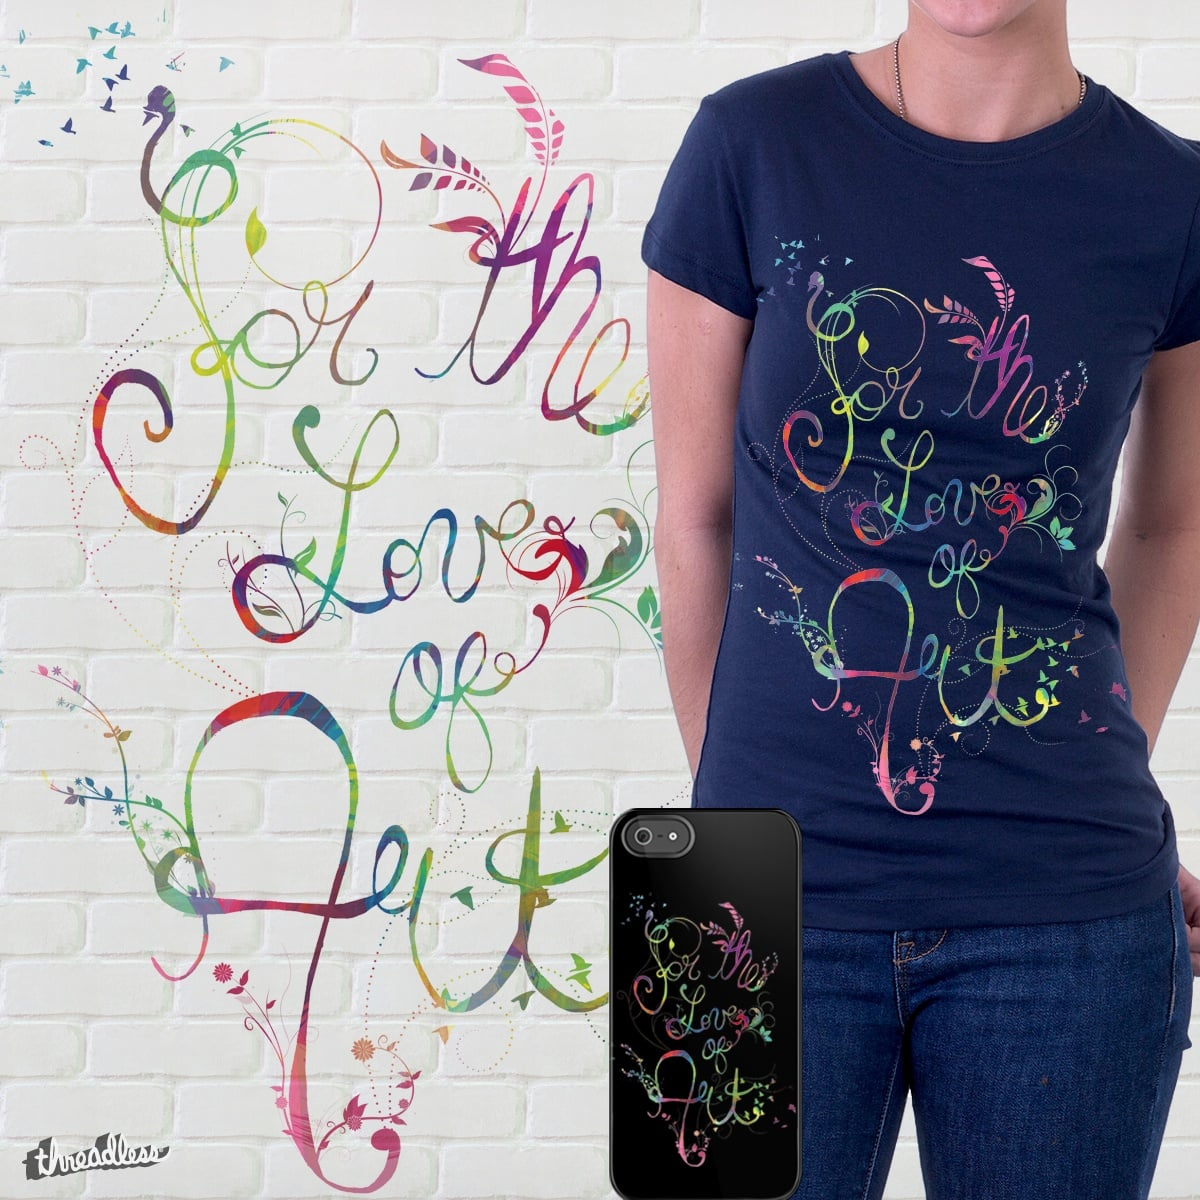 For the Love of Art by Caites on Threadless